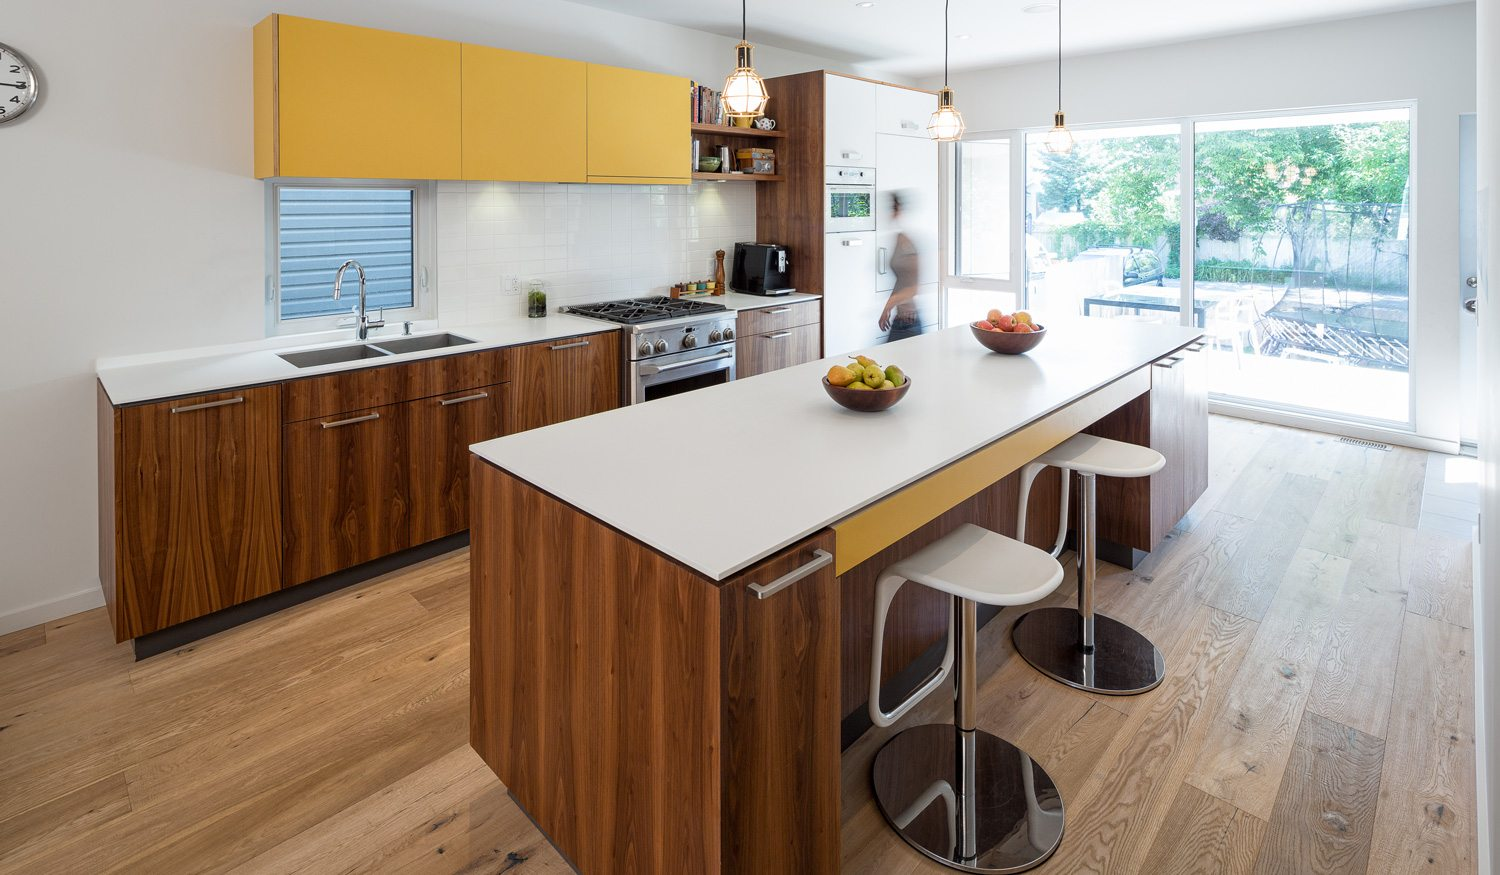 Design-builder sets down roots in Hintonburg with compact family home on vacant side lot